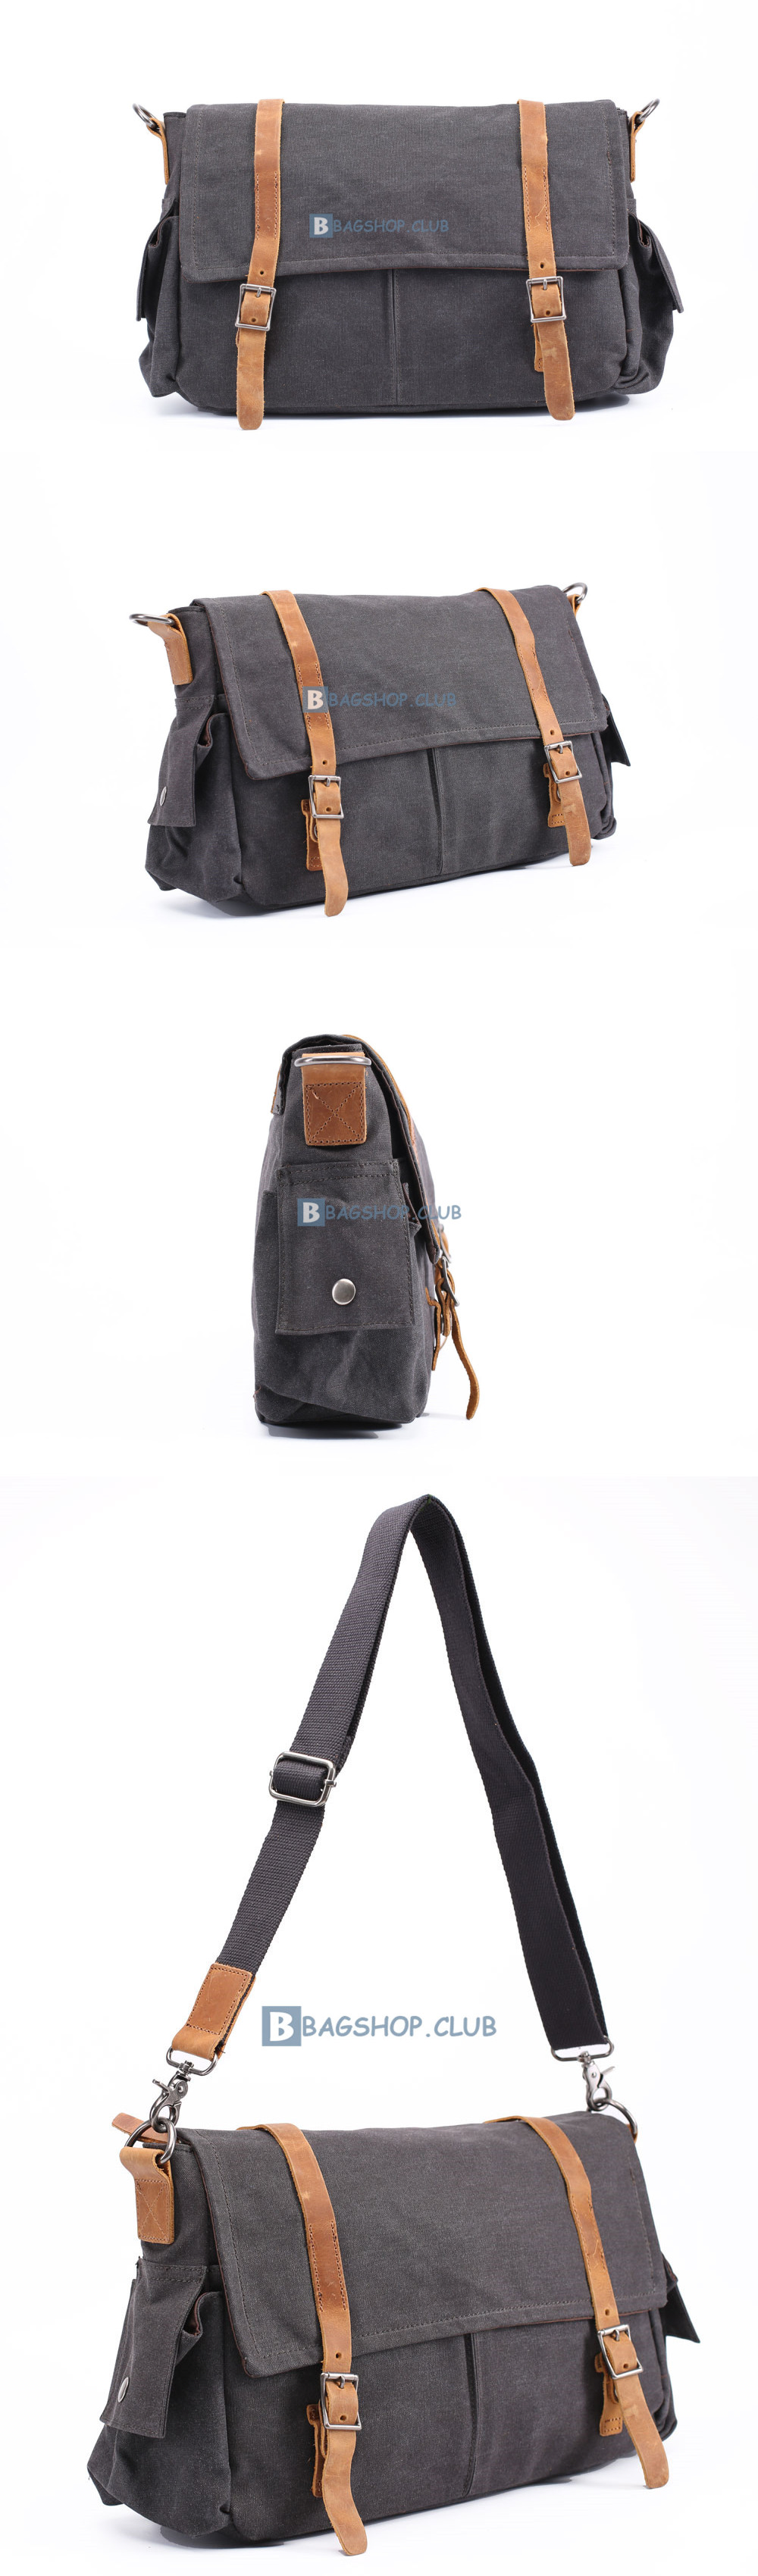 66.99 Mens Small Canvas Shoulder Bags School Bags 1d9975bebe082